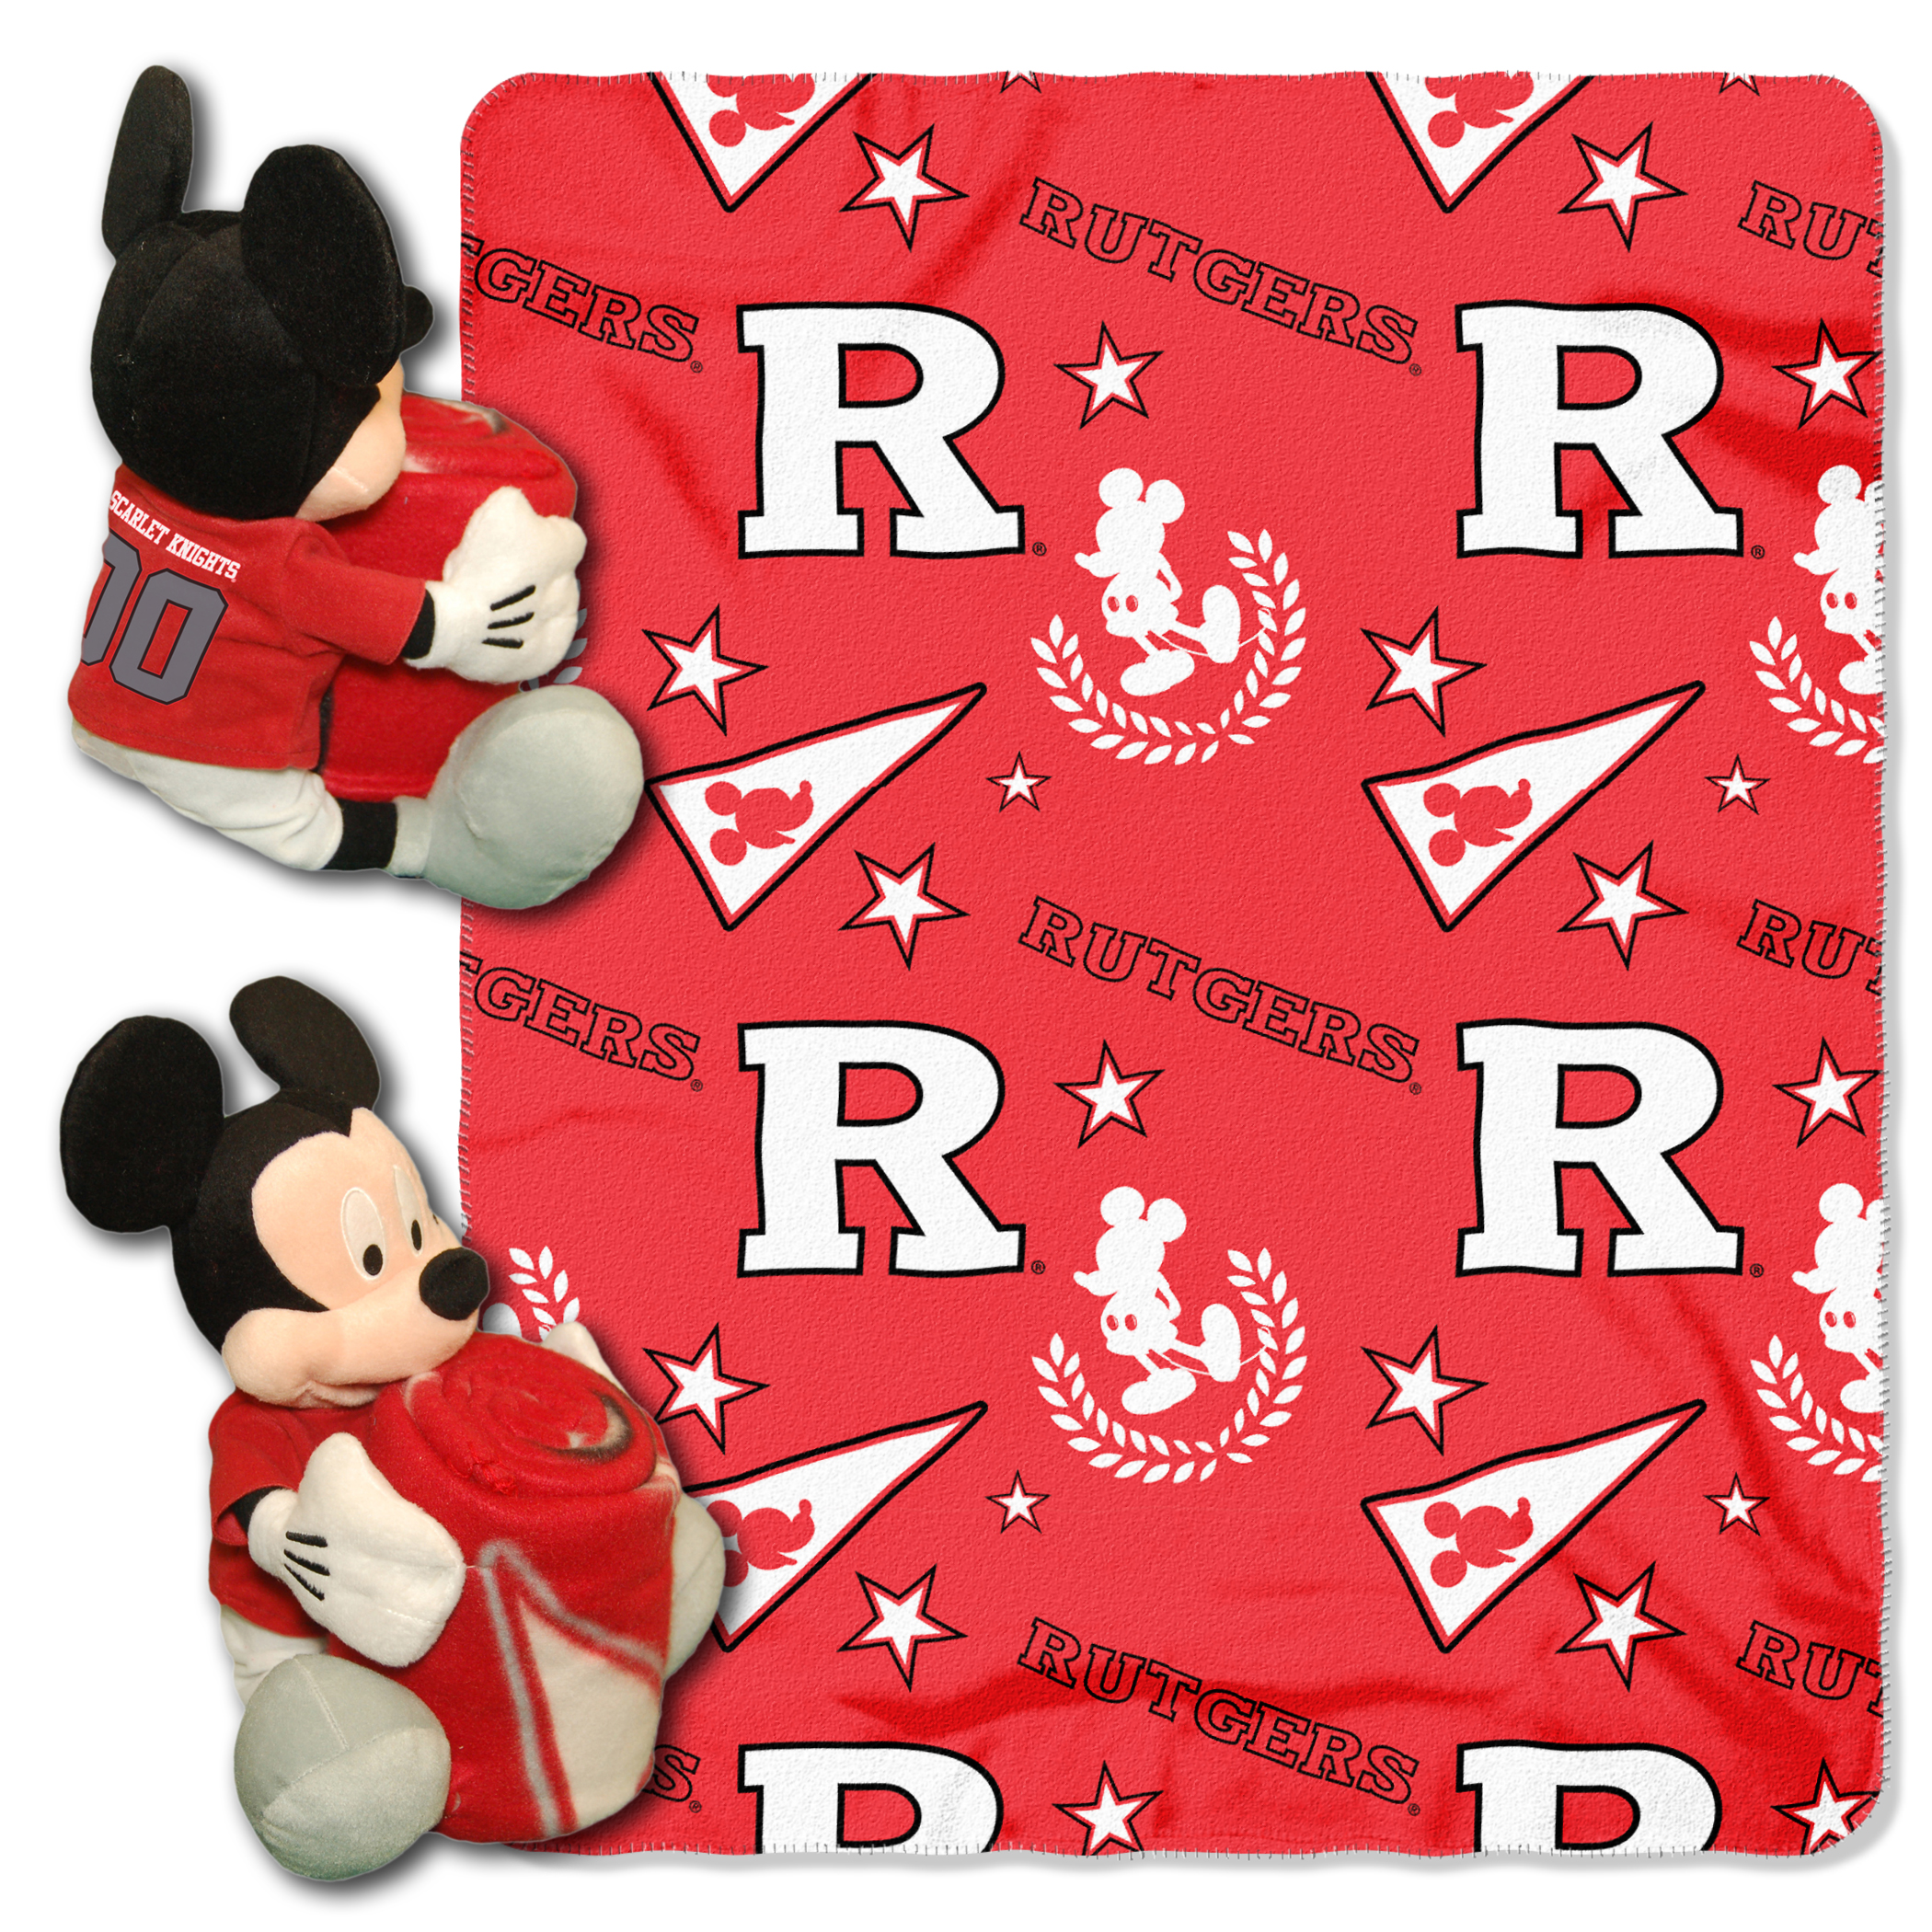 "Official NCAA and Disney Cobrand Rutgers Scarlet Knights  Mickey Mouse Hugger Character Shaped Pillow and 40""x 50"" Fleece Throw Set"